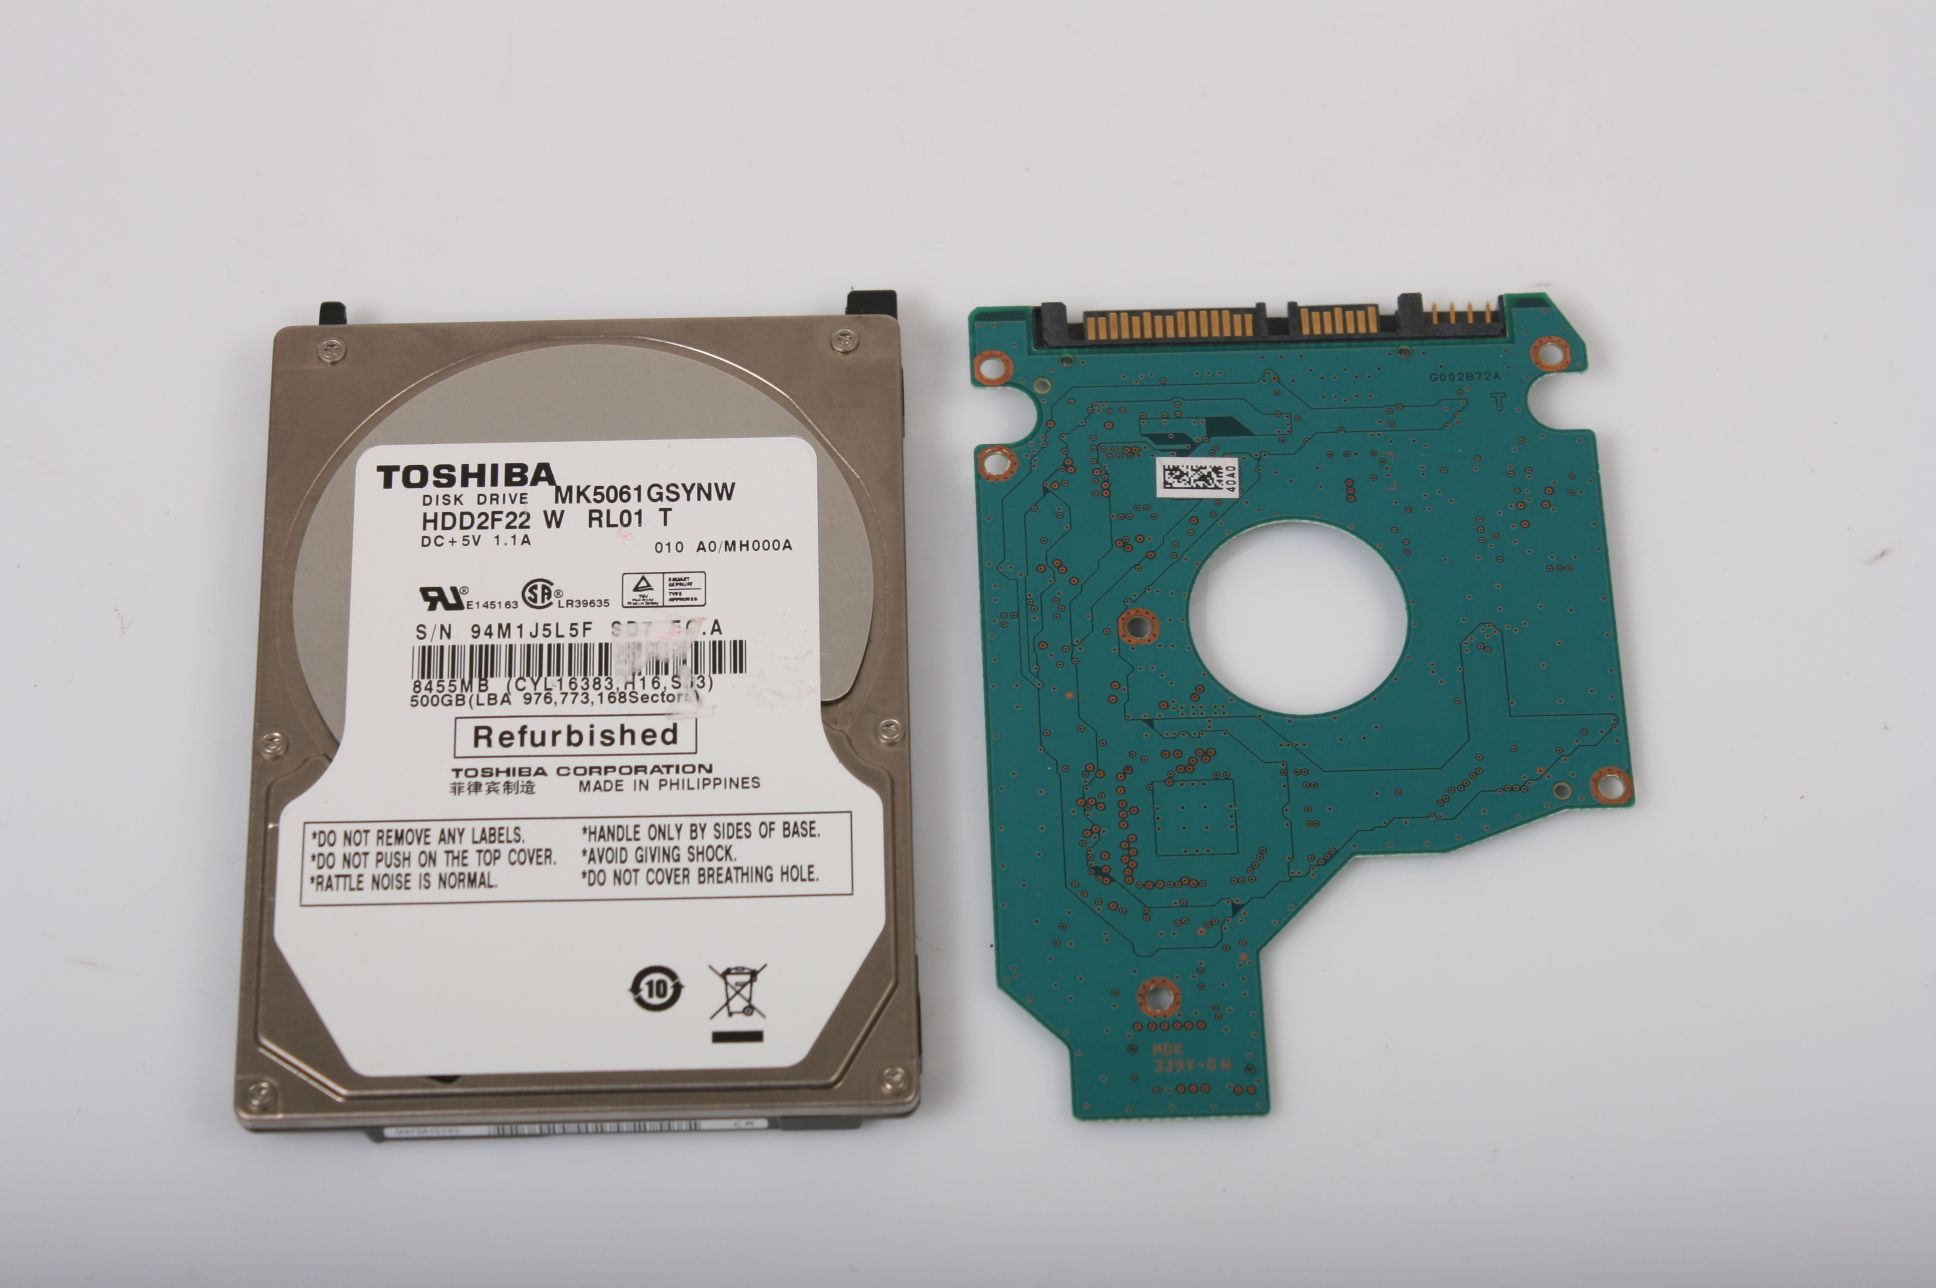 TOSHIBA MK5061GSYNW 500GB 2.5 SATA HARD DRIVE / PCB (CIRCUIT BOARD) ONLY FOR DATA